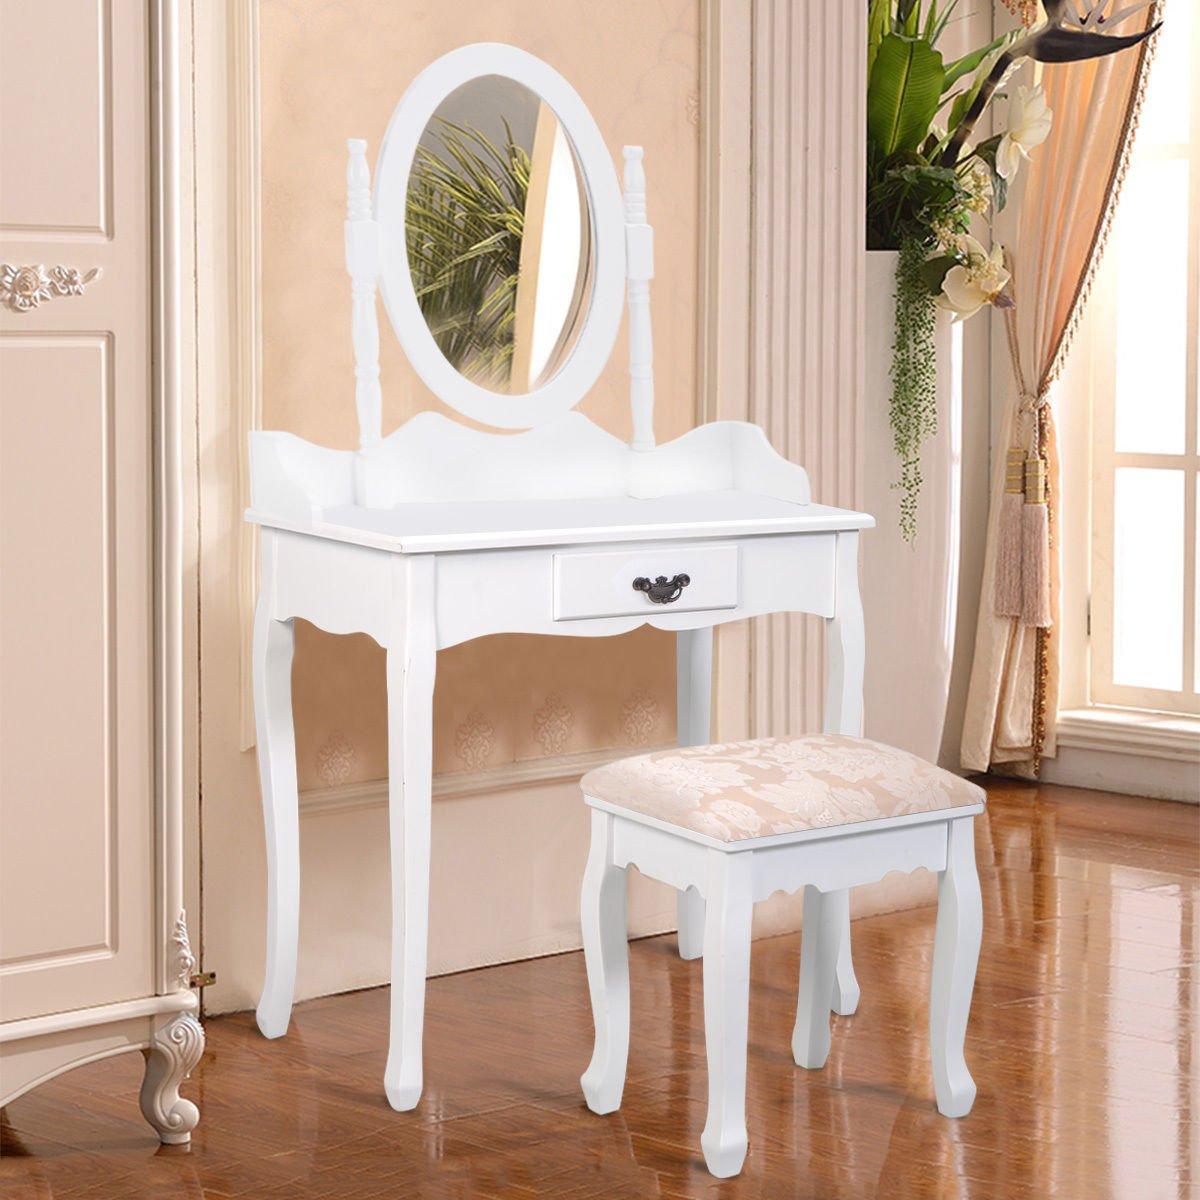 Amazon.com: Giantex White Bathroom Vanity Jewelry Makeup Dressing Table Set  W/Stool Mirror Wood Desk (1 Drawer): Kitchen U0026 Dining